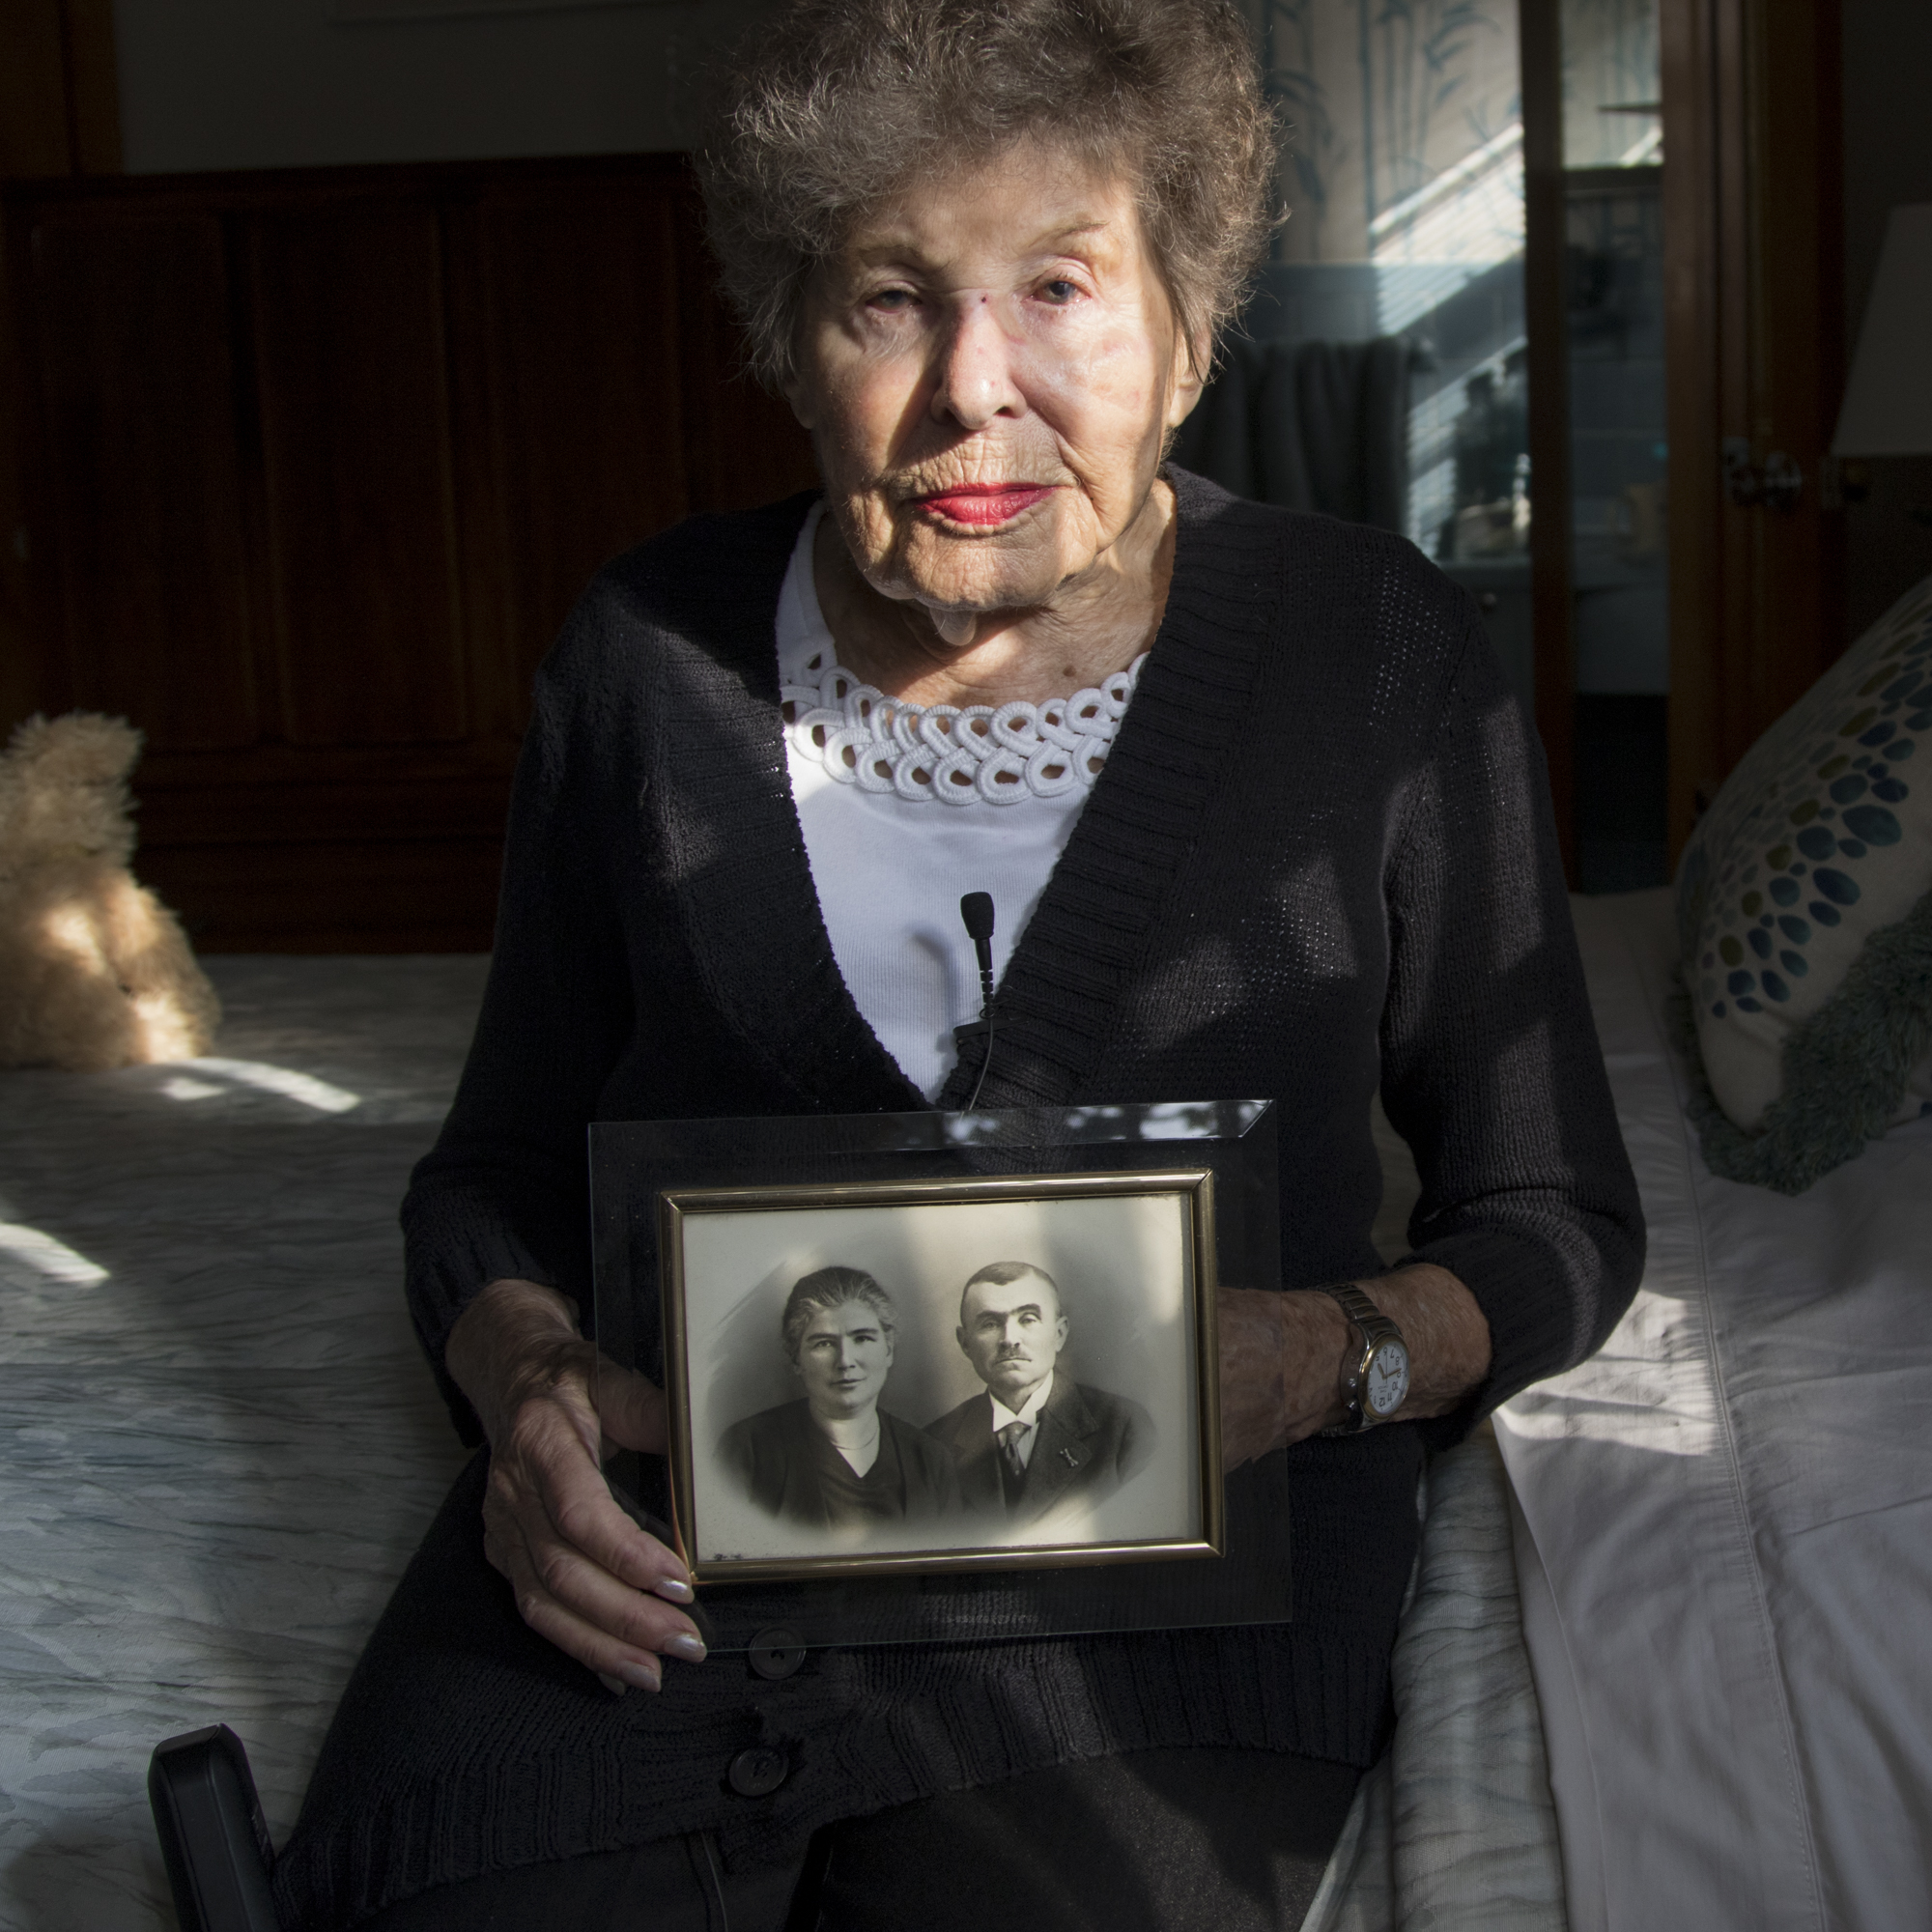 Holocaust survivor Margot Capell holds the only photograph she has of her parents who died during the Holocaust. Capell was able to escape Nazi Germany and immigrate to England before arriving in the United States. She was saving up money to bring her parents to America, but it was too late.